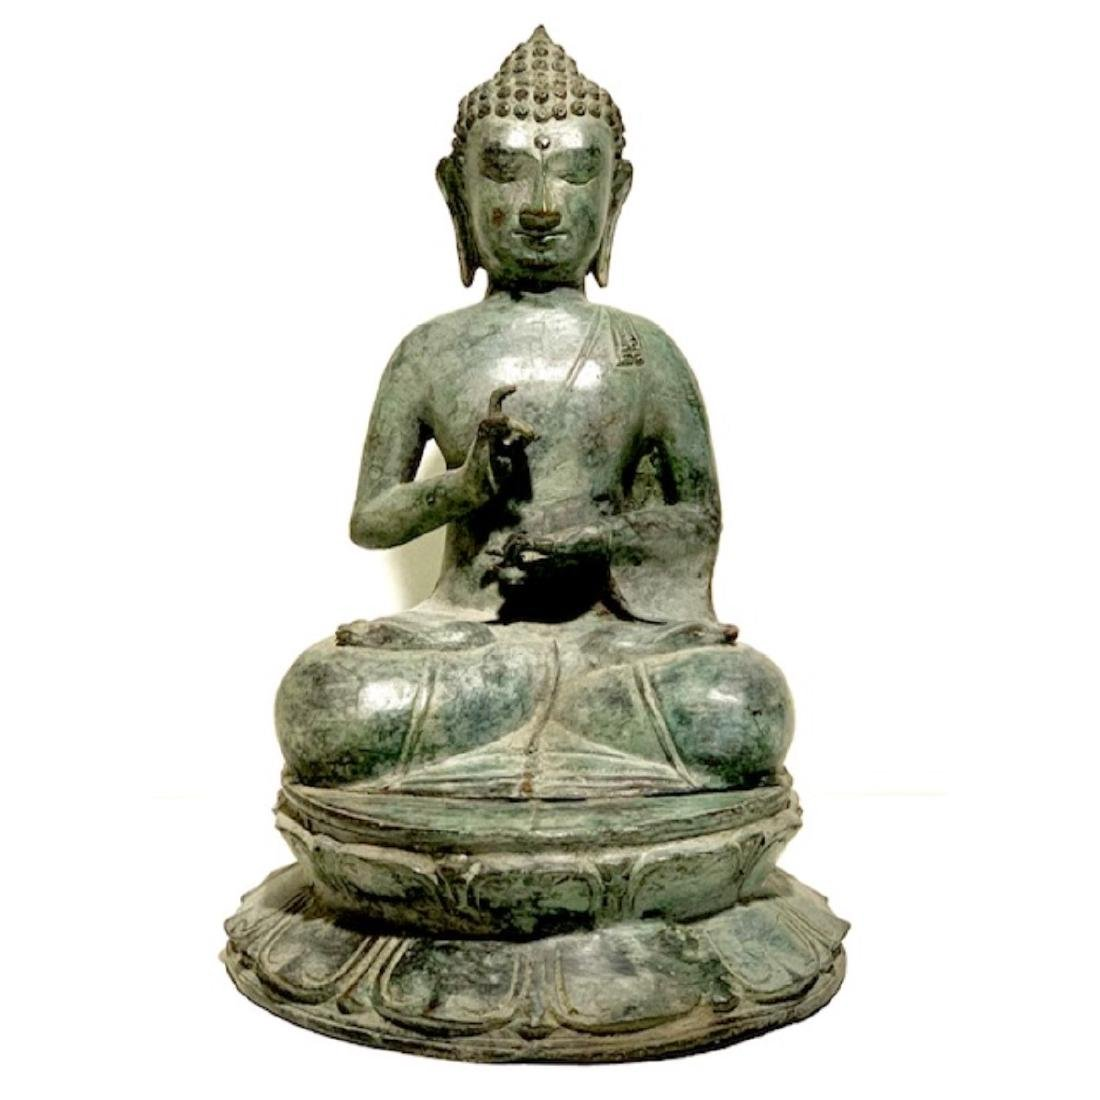 Large 19th Century Bronze Seated Buddha Sculpture with